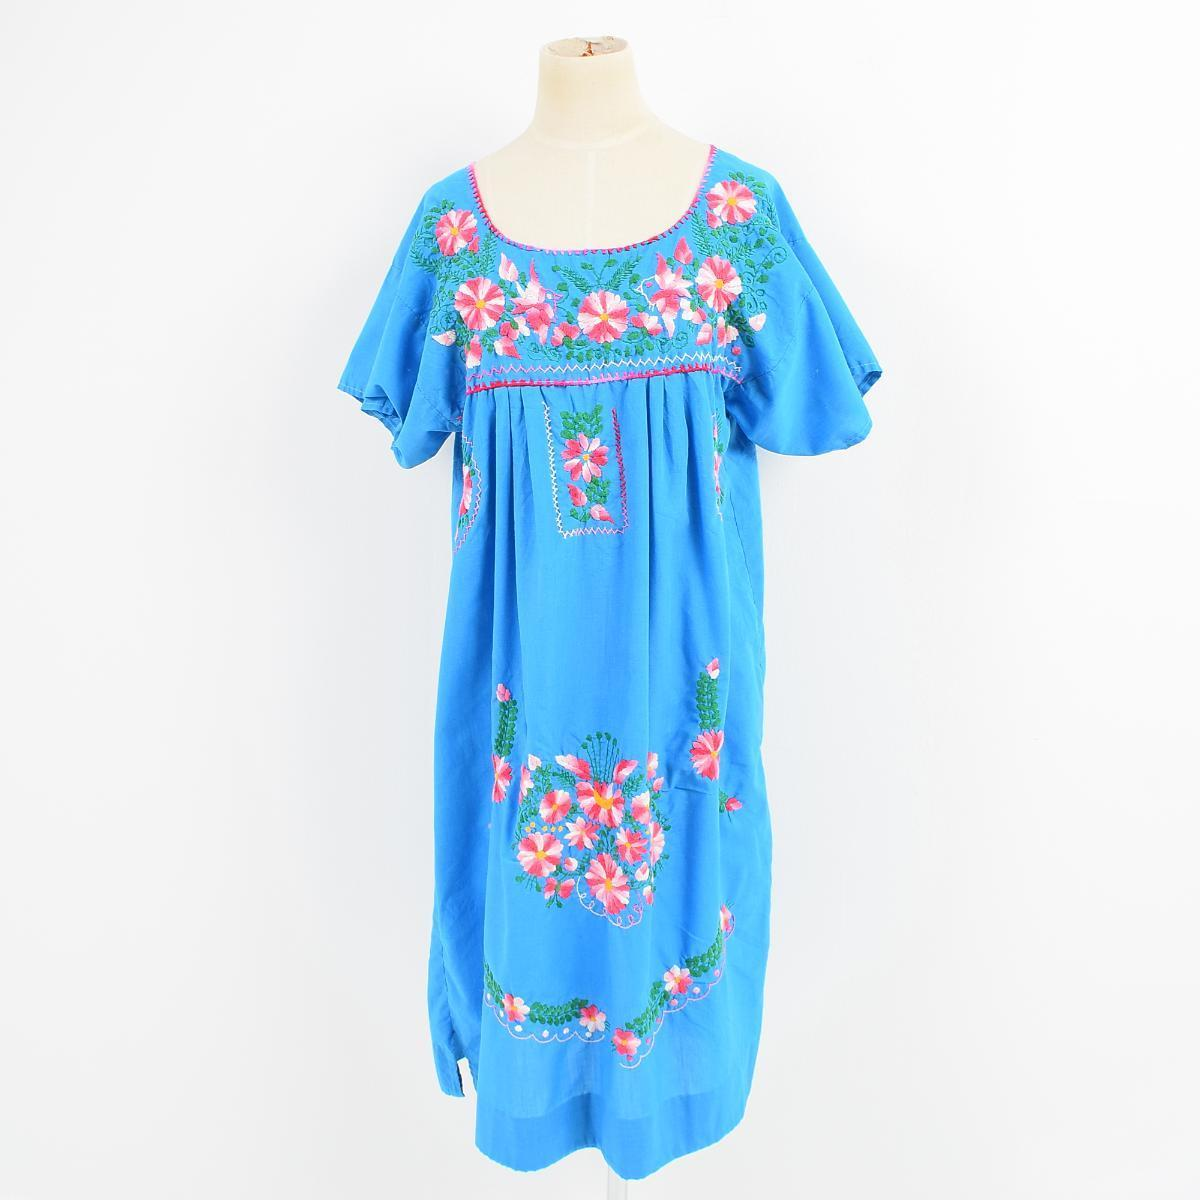 e106e0d319 Hand embroidery floral design embroidery Mexican dress Lady's M /wes9373 ...